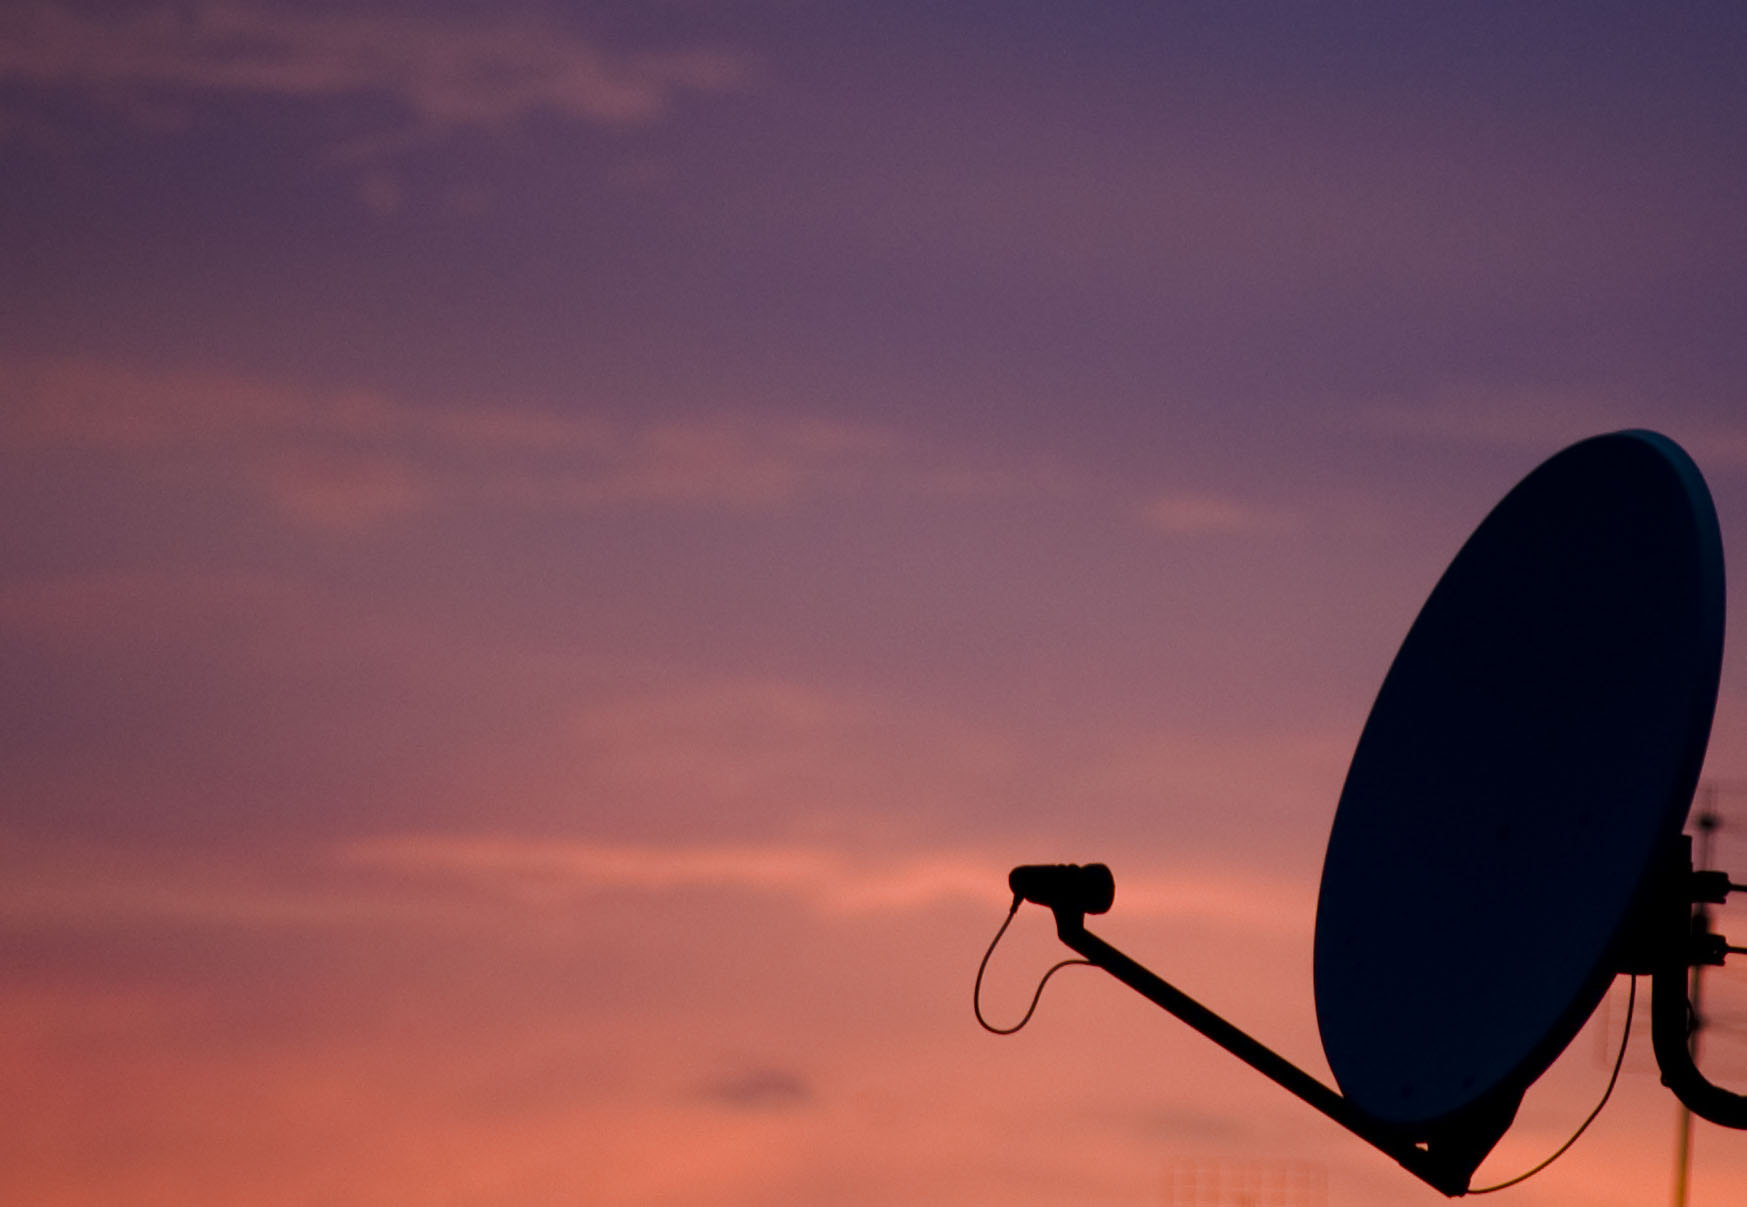 Photograph Sunset Broadcasting by Stefano Bolognesi on 500px